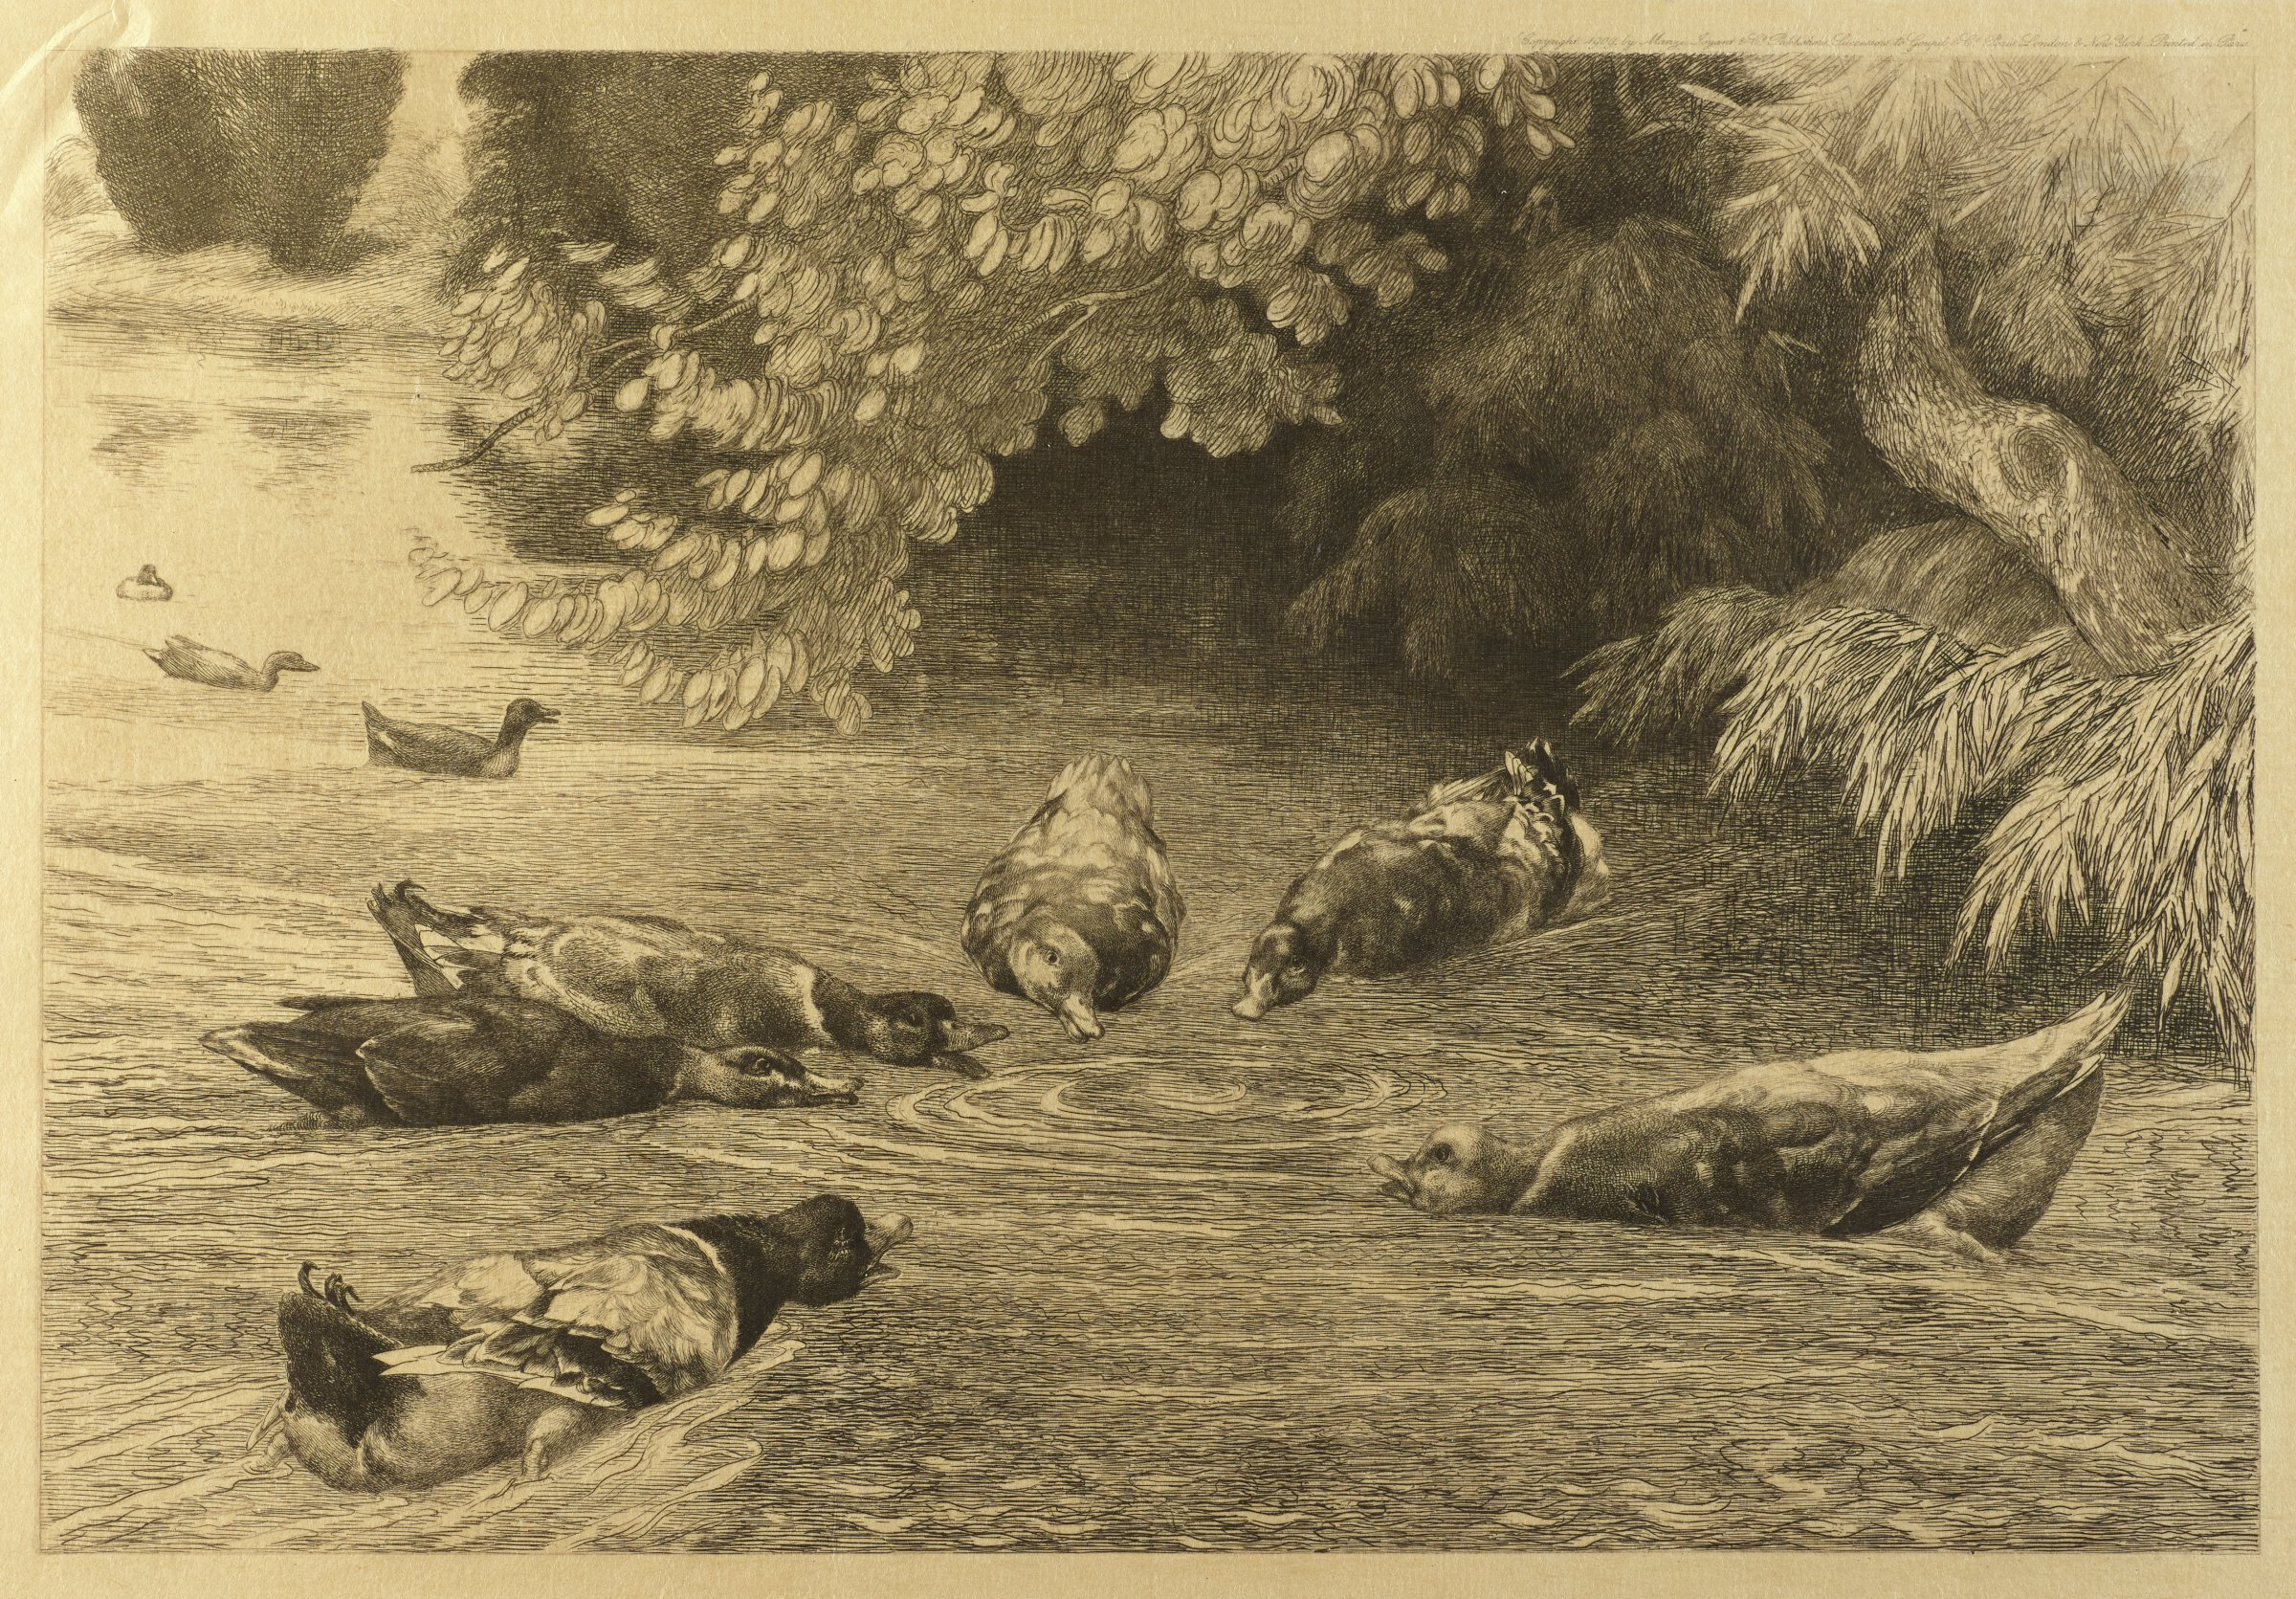 A group of ducks gather around a ripple in a body of water. Lush trees populate the bank.